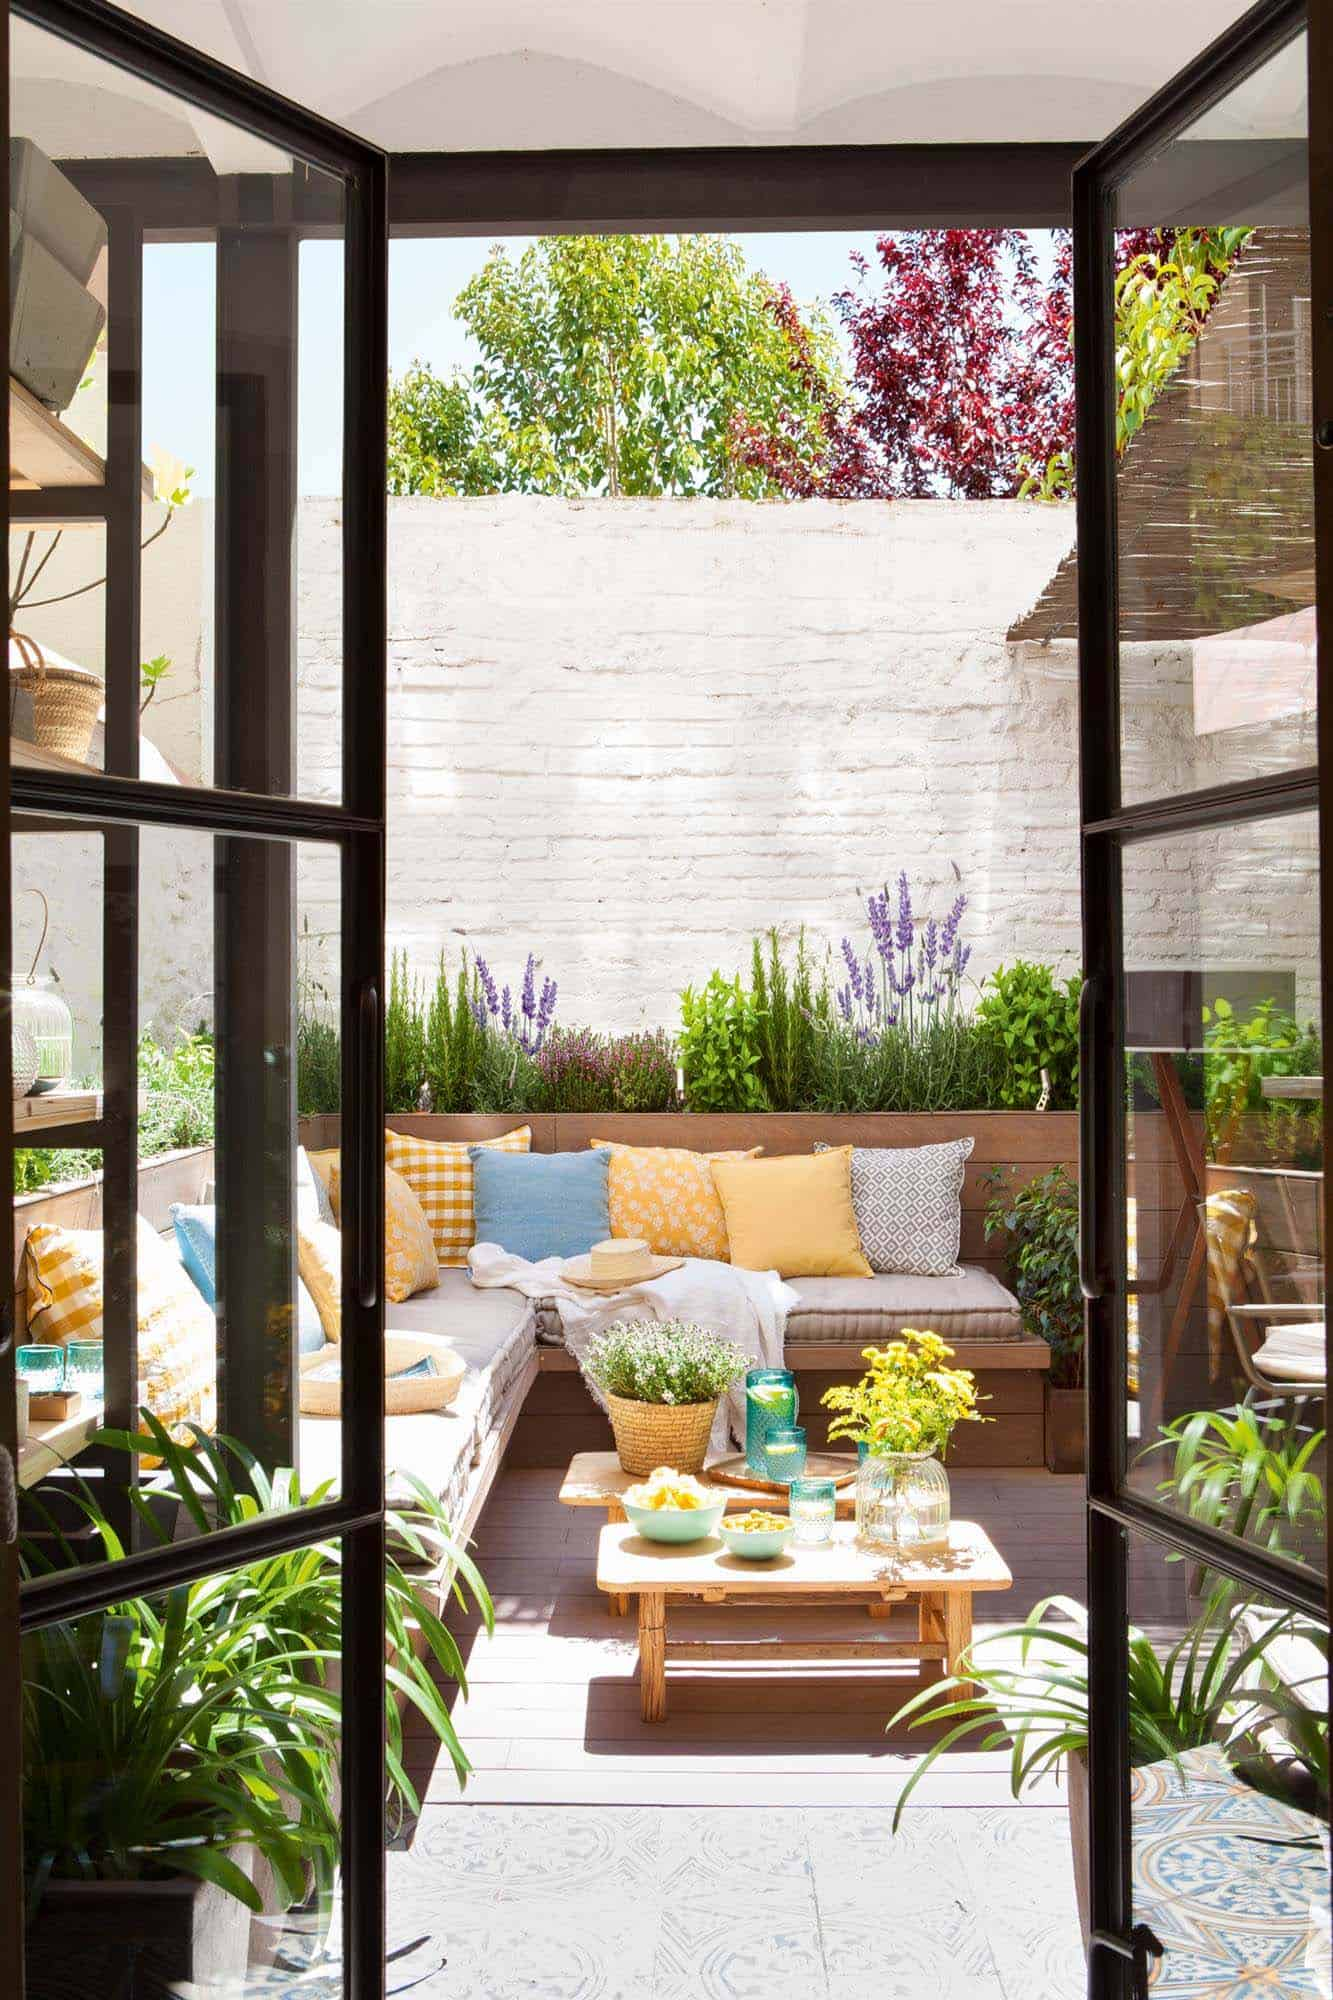 33 Fabulous Ideas For Creating Beautiful Outdoor Living Spaces on Outdoor Living Patio id=15940